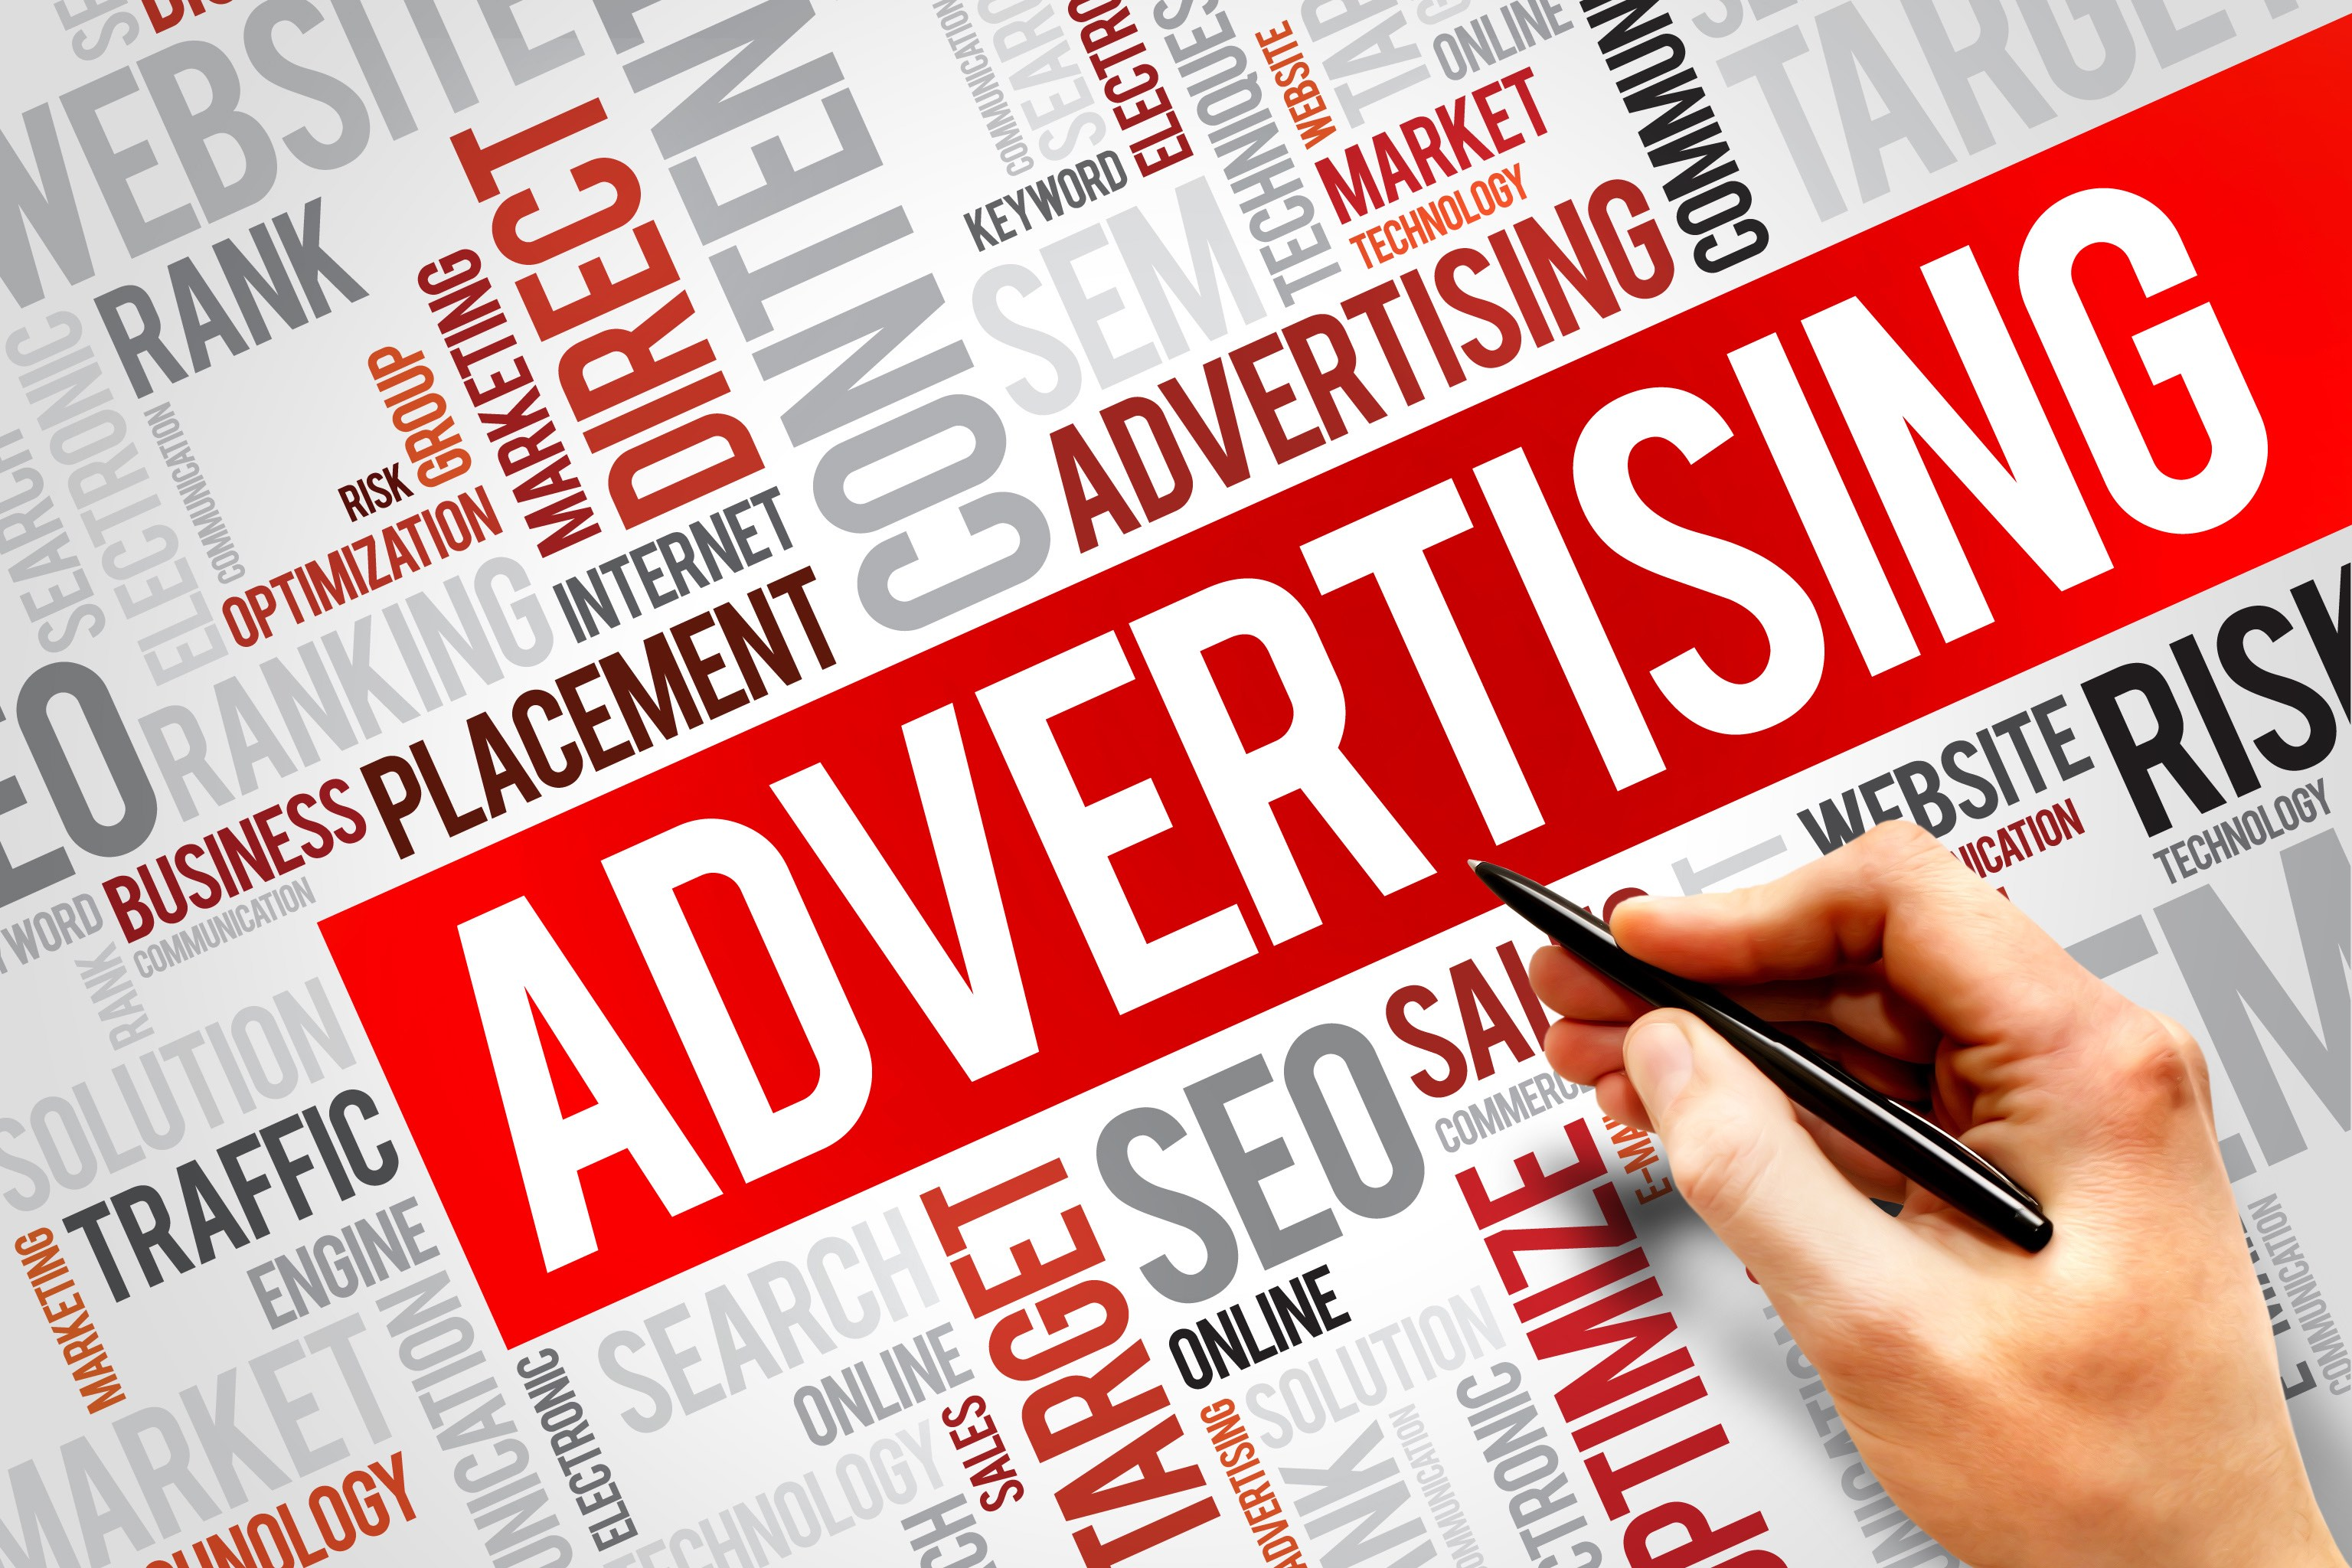 About advertising